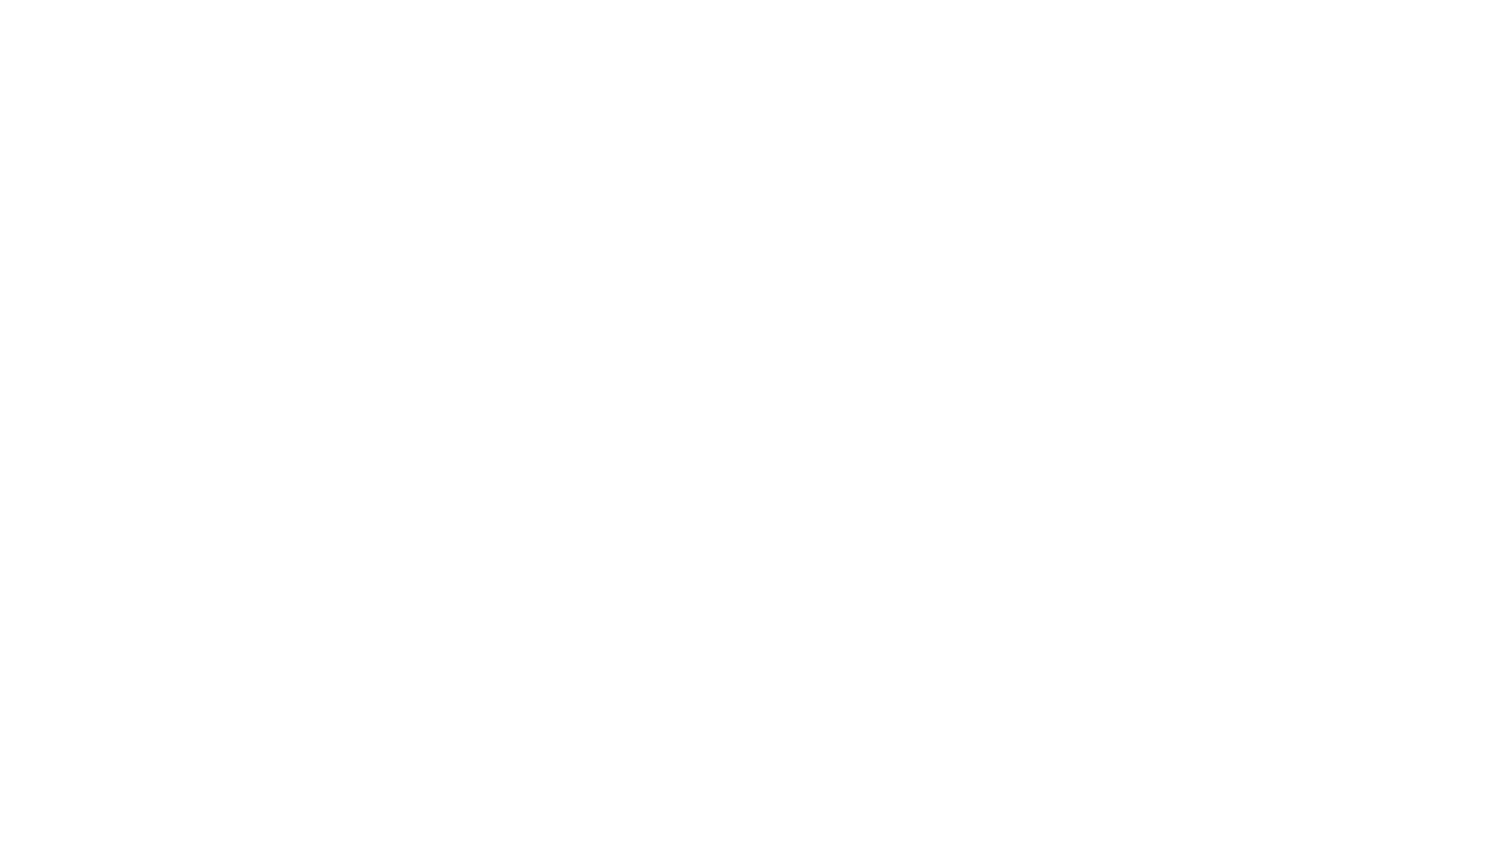 First Baptist Church of Claremont